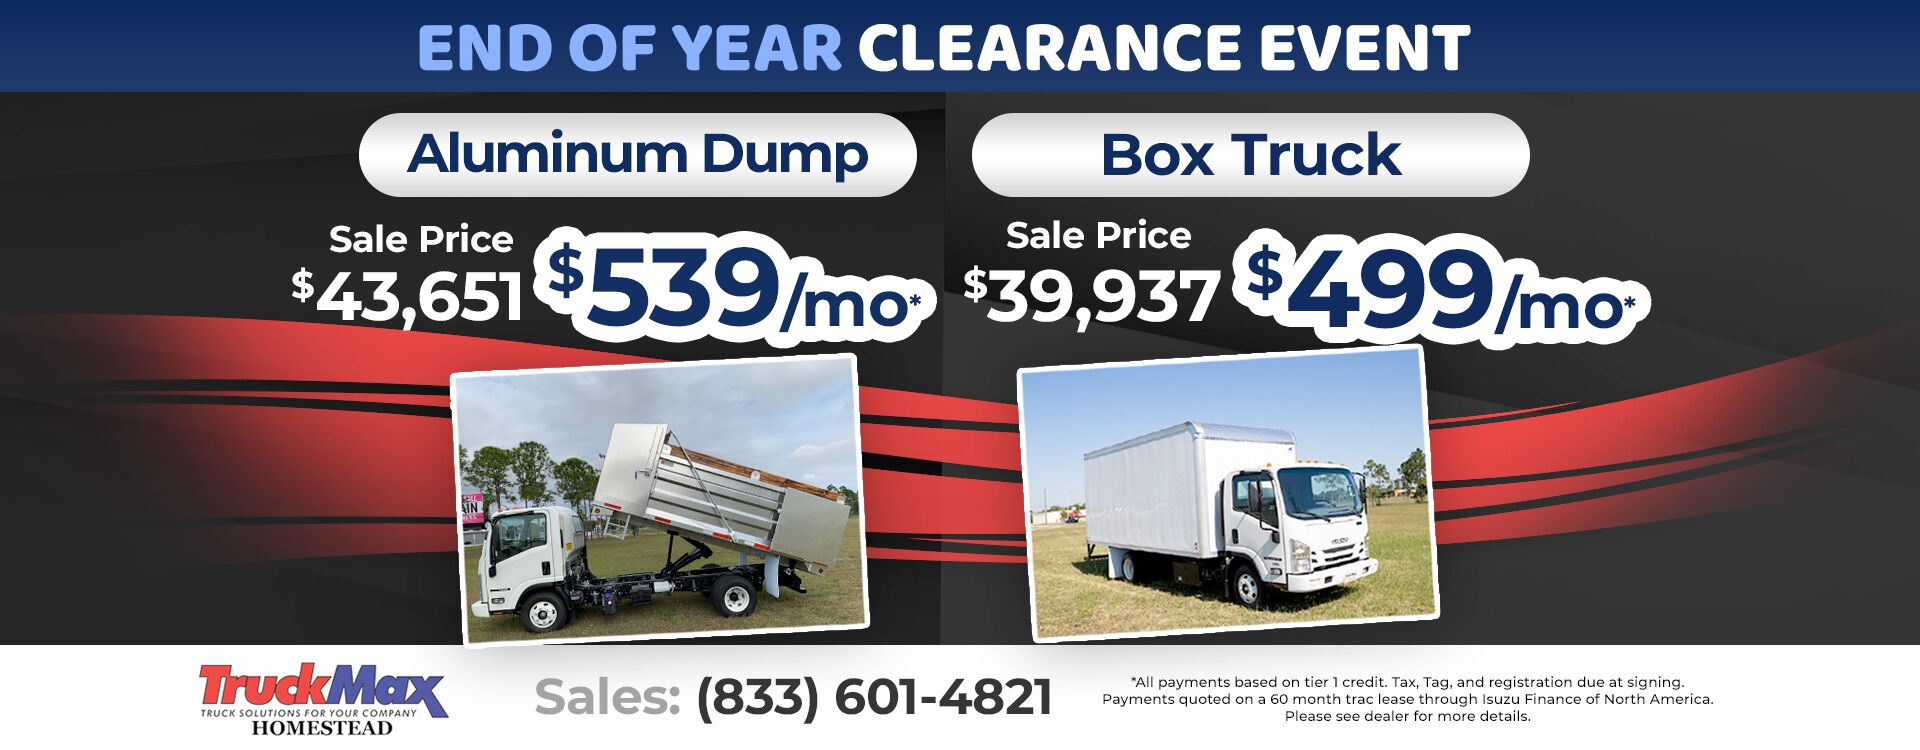 End of Year Clearance Event at Truck Max